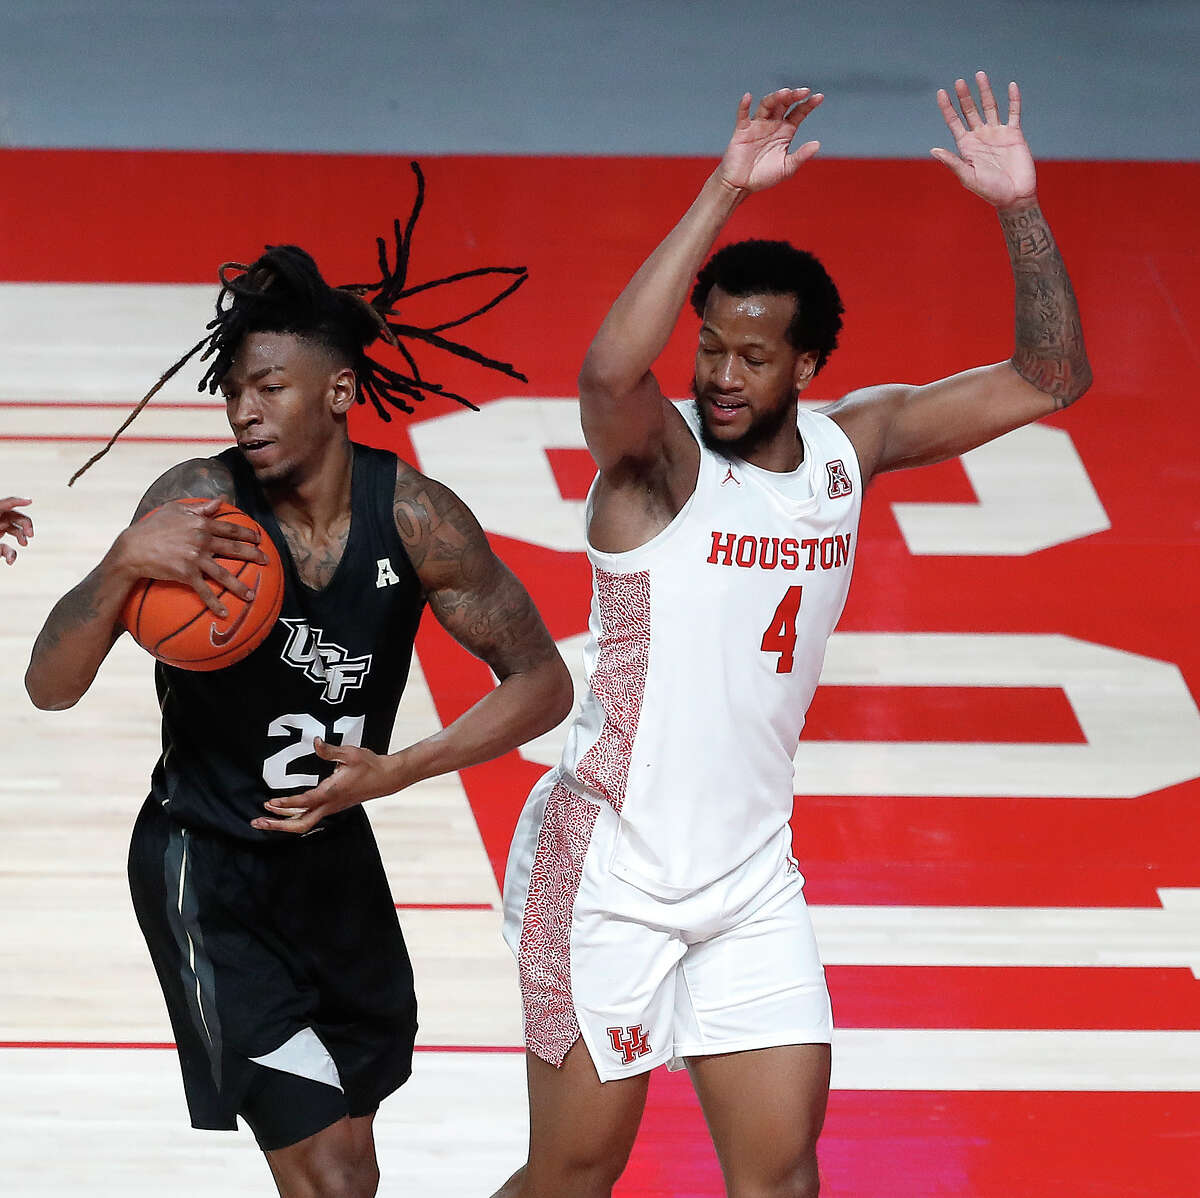 UCF Knights forward C.J. Walker (21) grabs the rebound from Houston Cougars forward Justin Gorham (4) during the second half of a men's NCAA basketball game at the Fertitta Center, in Houston, Sunday, Jan. 17, 2021.